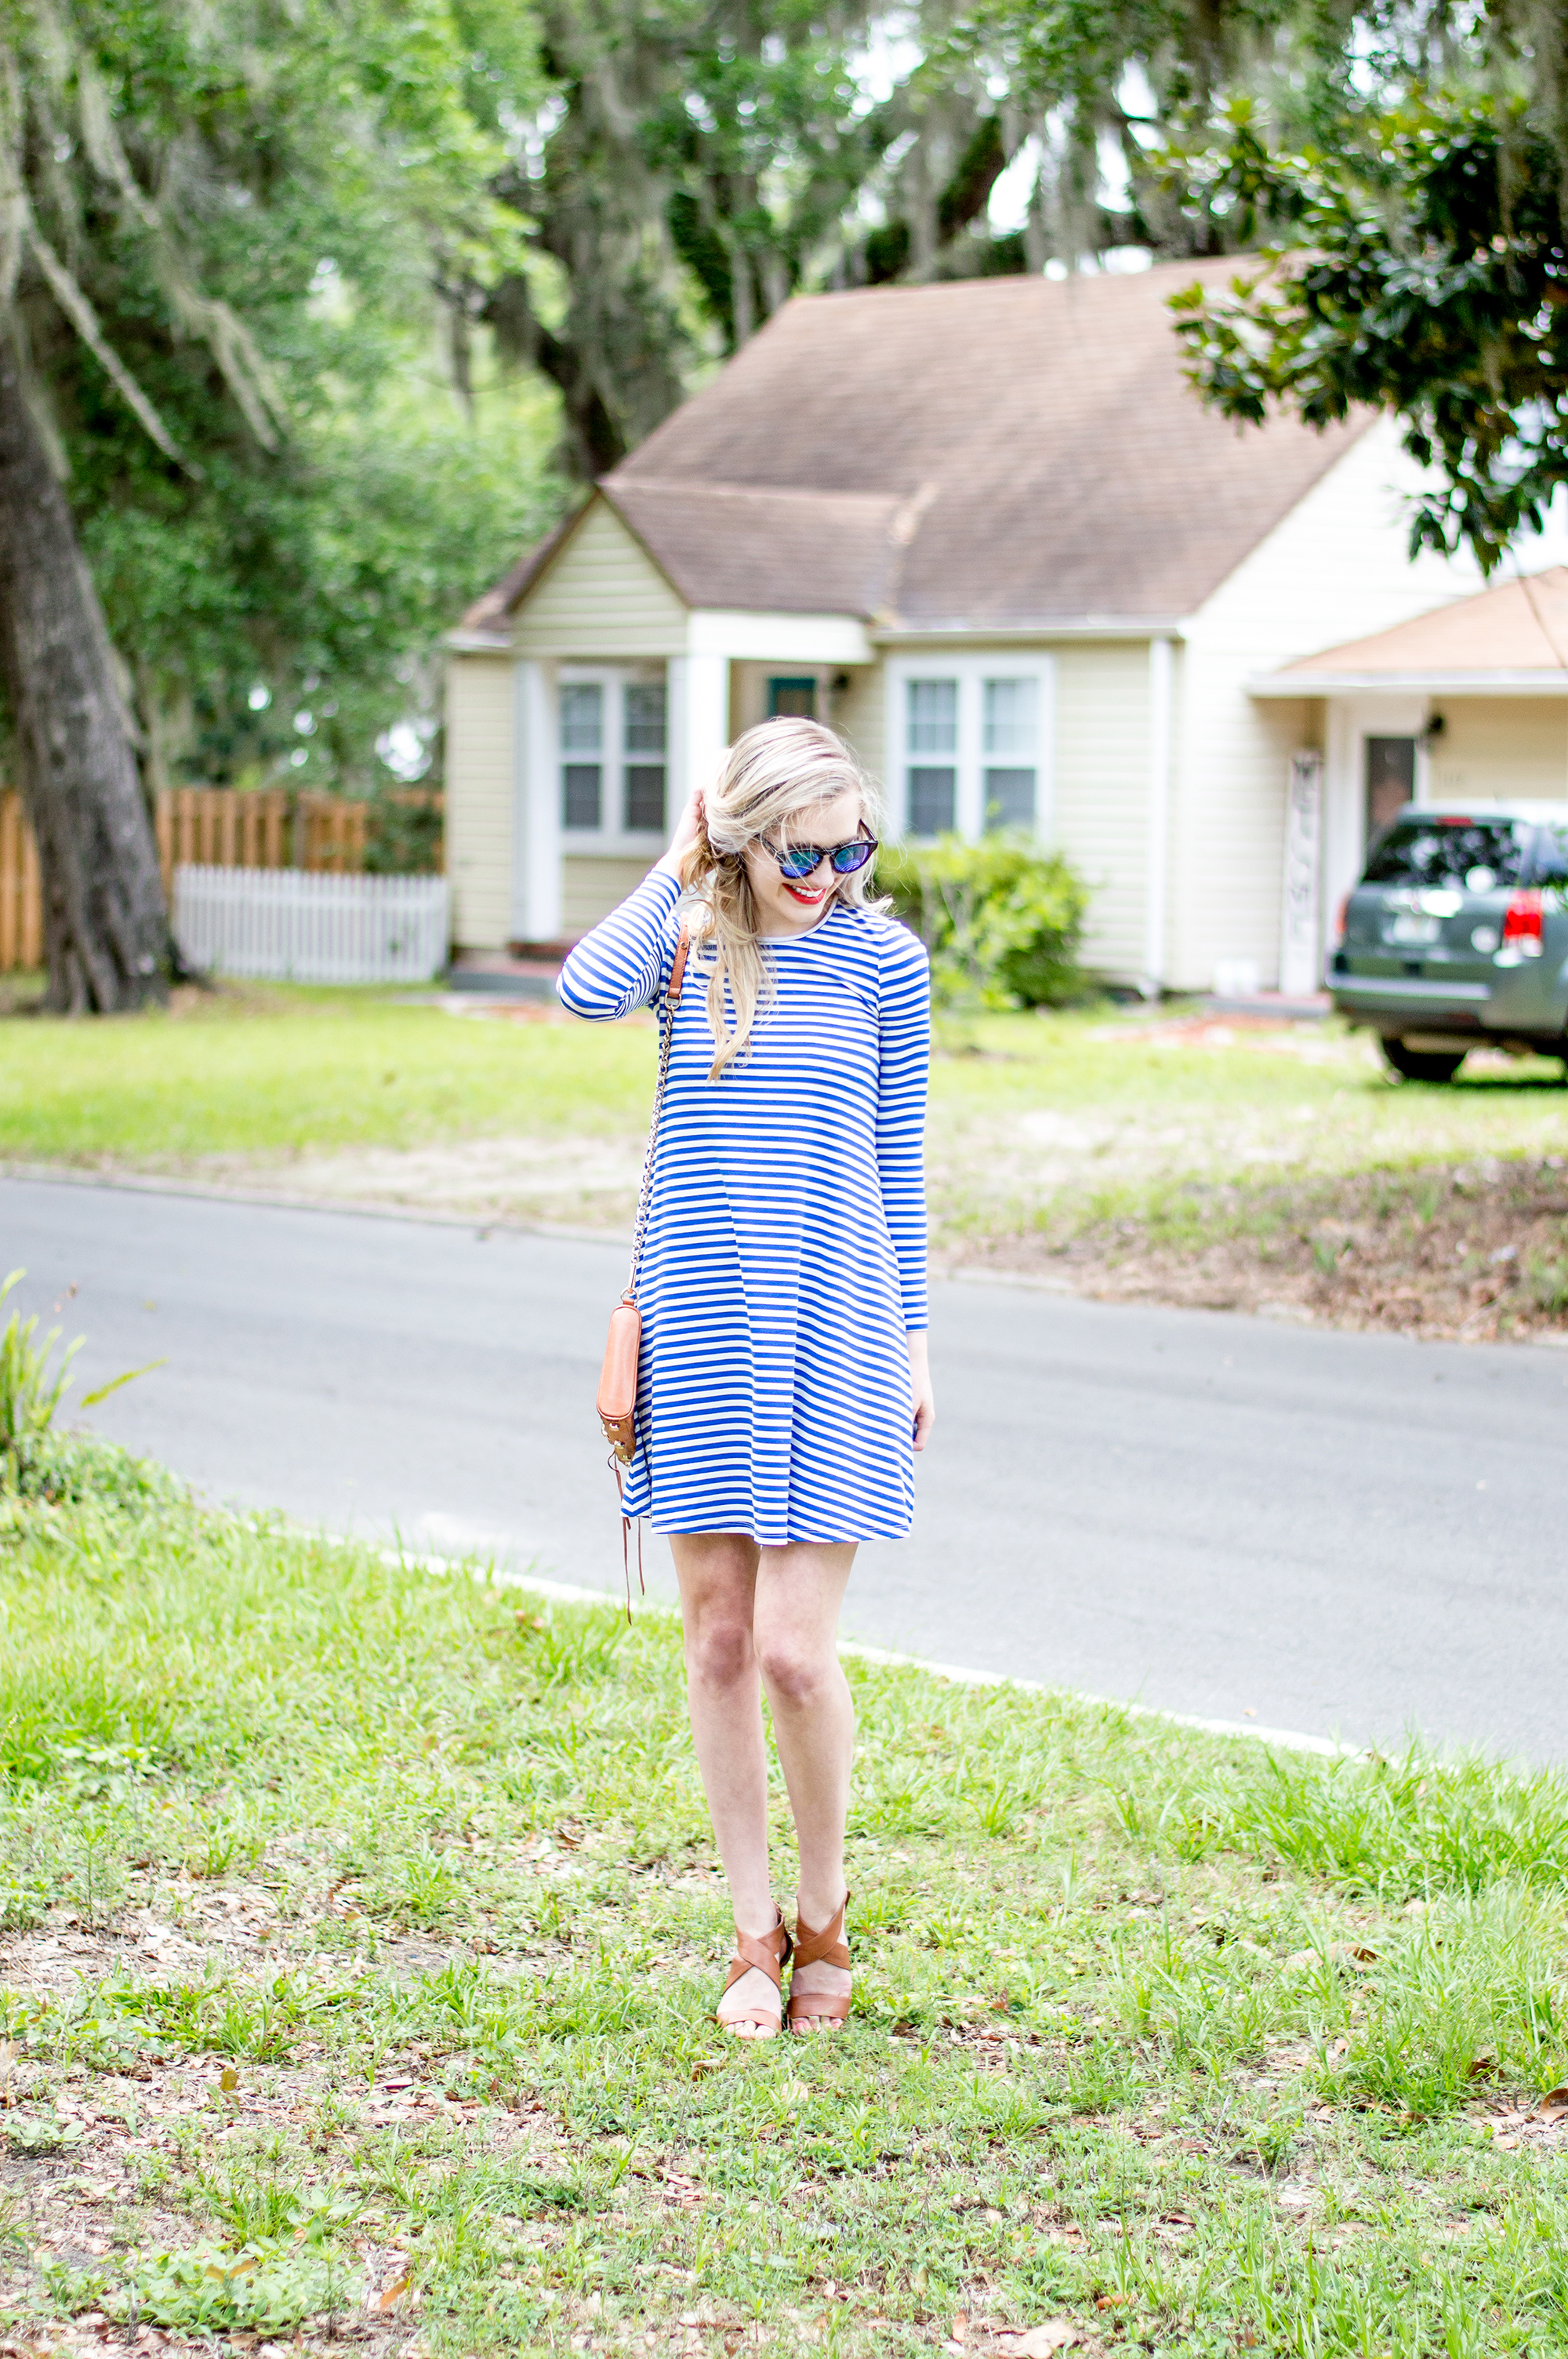 styelled-blog-fashion-style-beauty-lifestyle-blogger-florida-like-to-know-it-jane-hudson-stripes-striped-stripe-dress-sundress-memorial-day-diff-eyewear-sunglasses-rebecca-minkoff-05